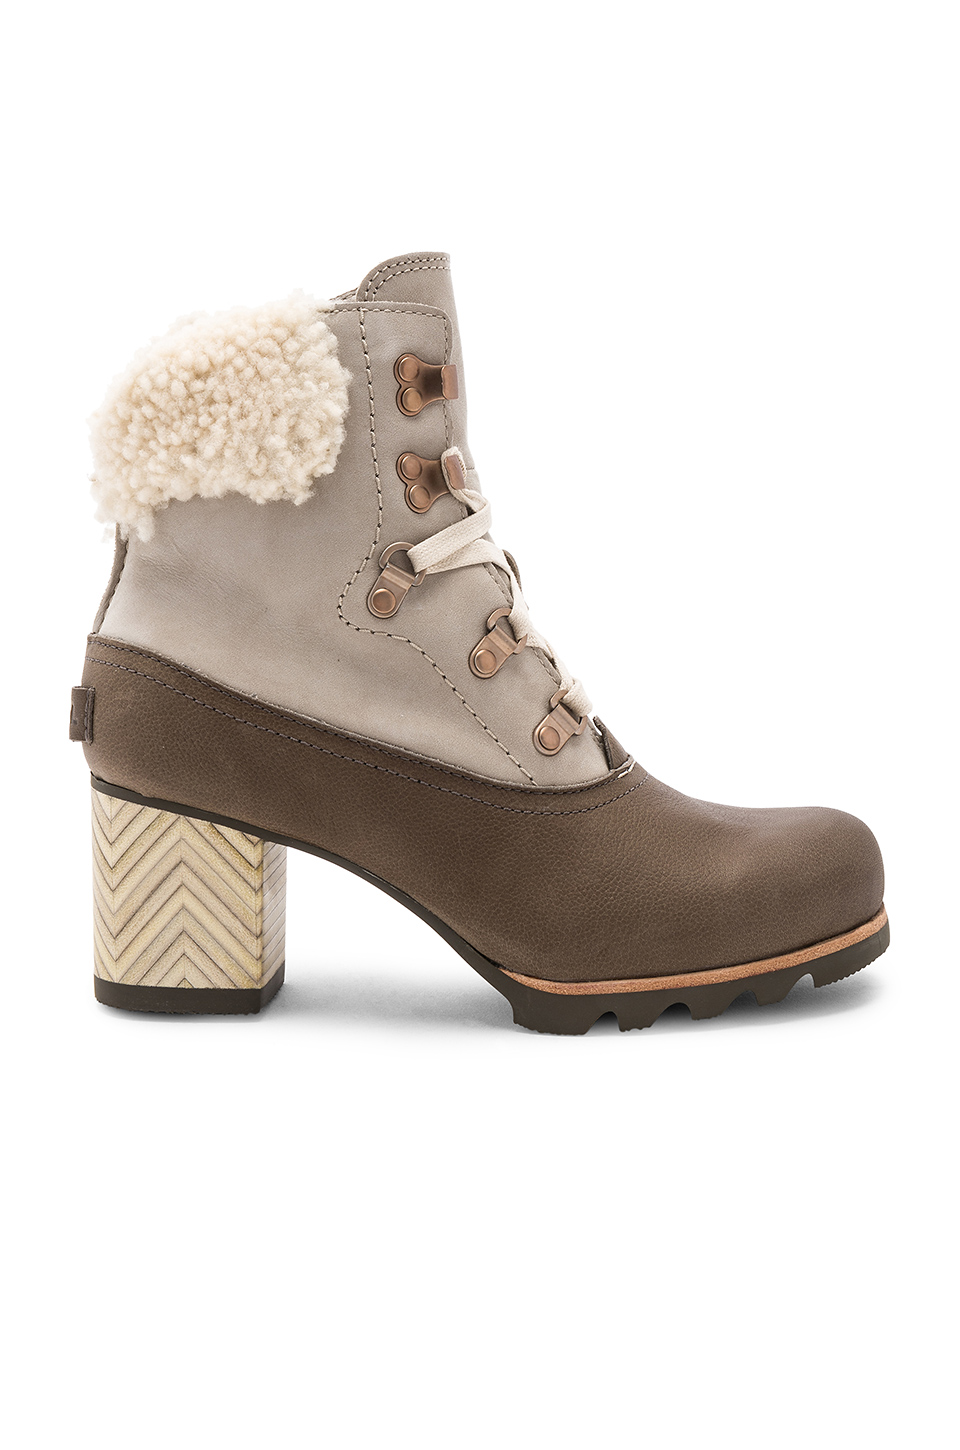 Sorel Jayne Lux Boot in Ancient Fossil/Mud